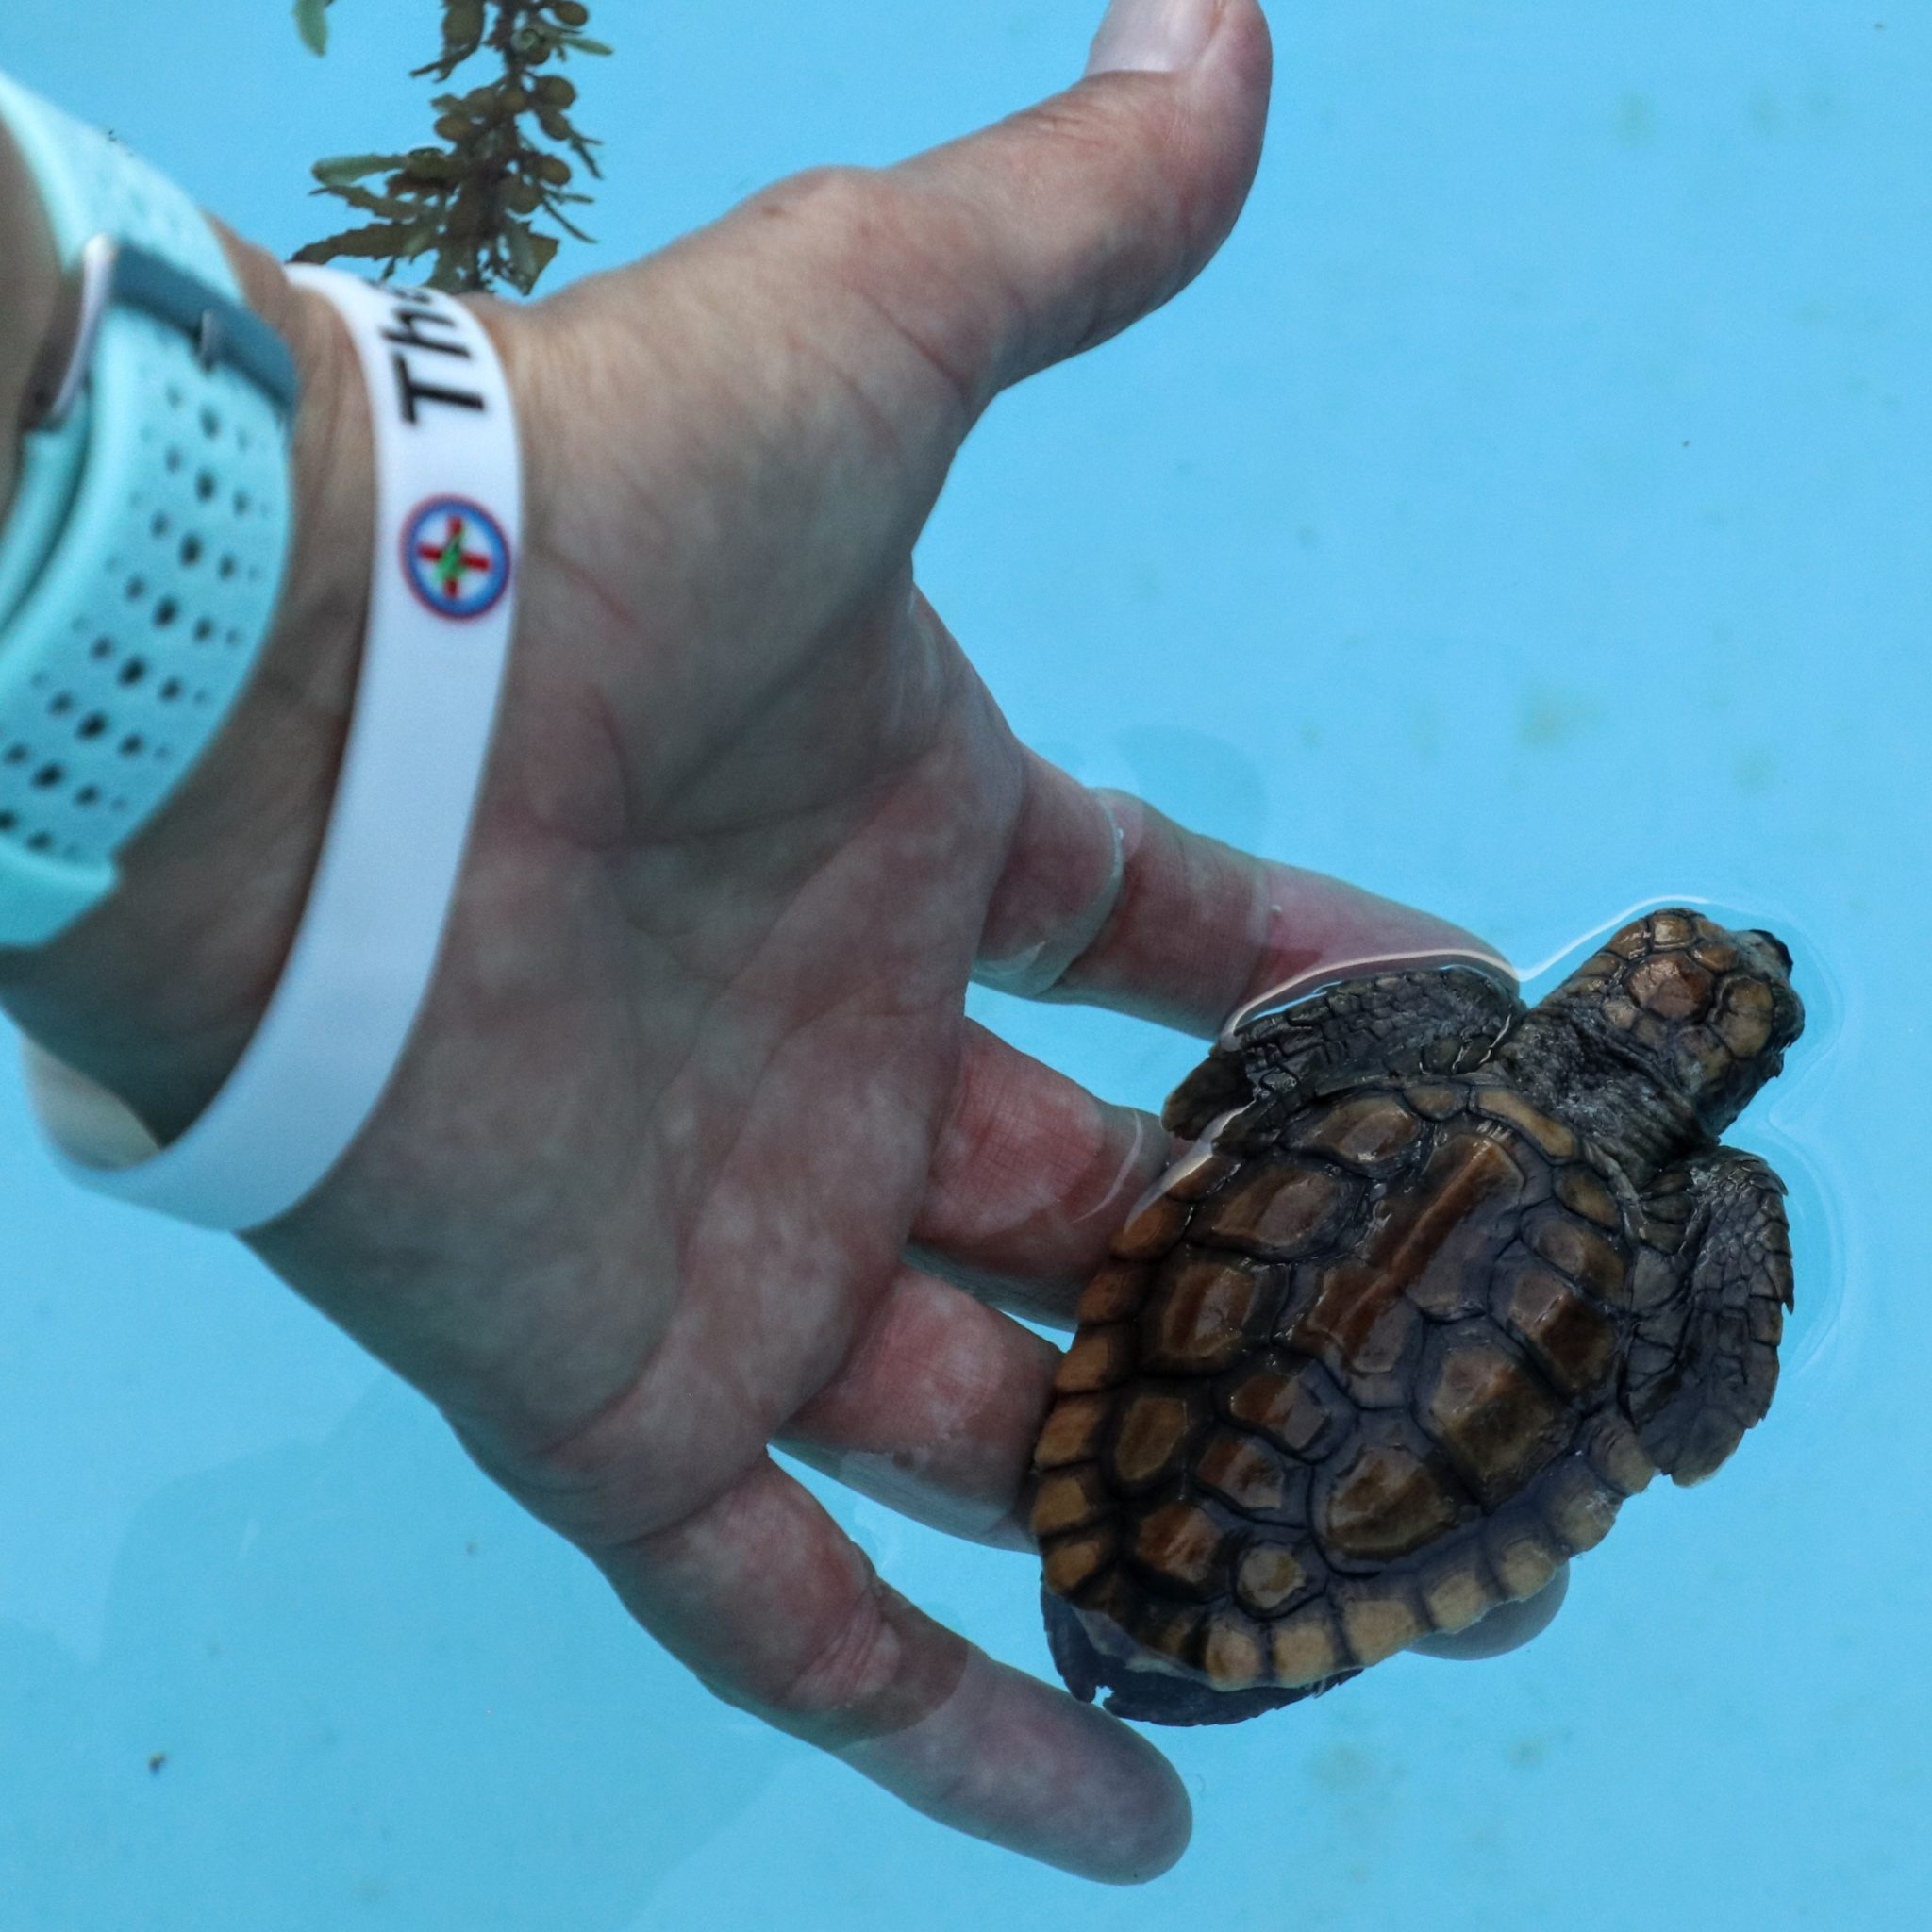 The Turtle Hospital director, Bette Zirkelbach holding a baby loggerhead hatchling above the water.